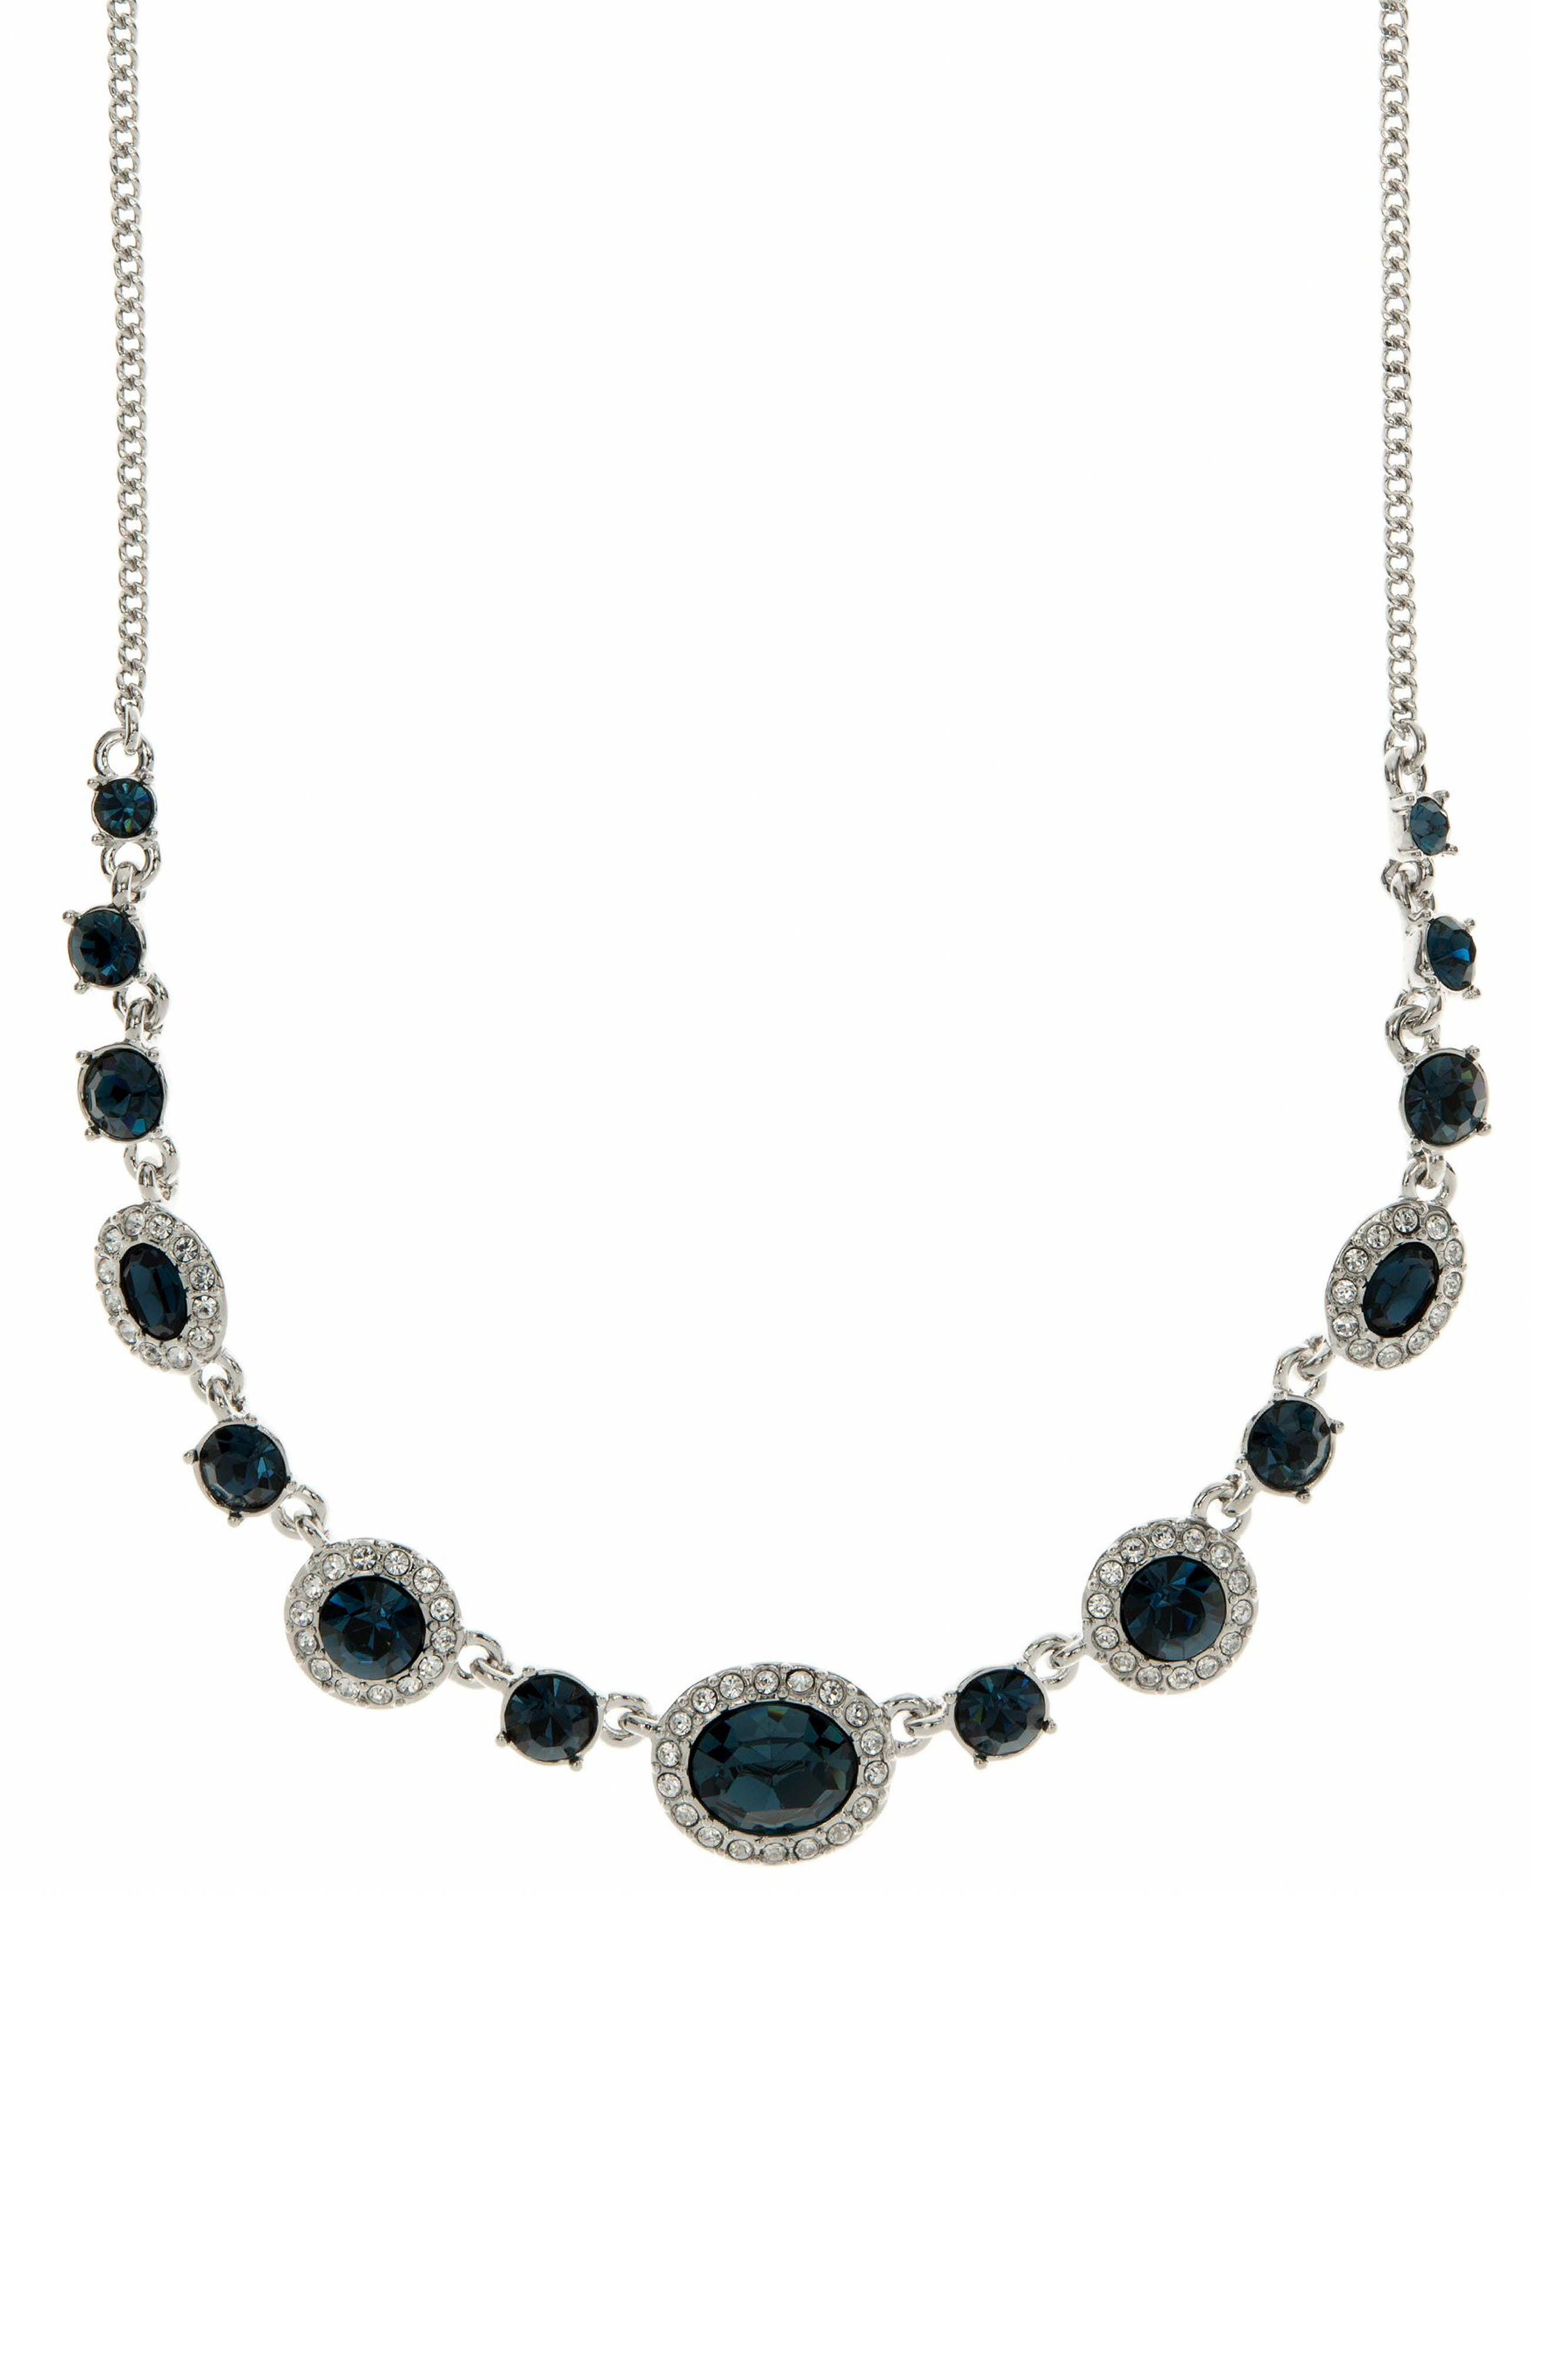 Main Image - Givenchy Crsytal Frontal Necklace